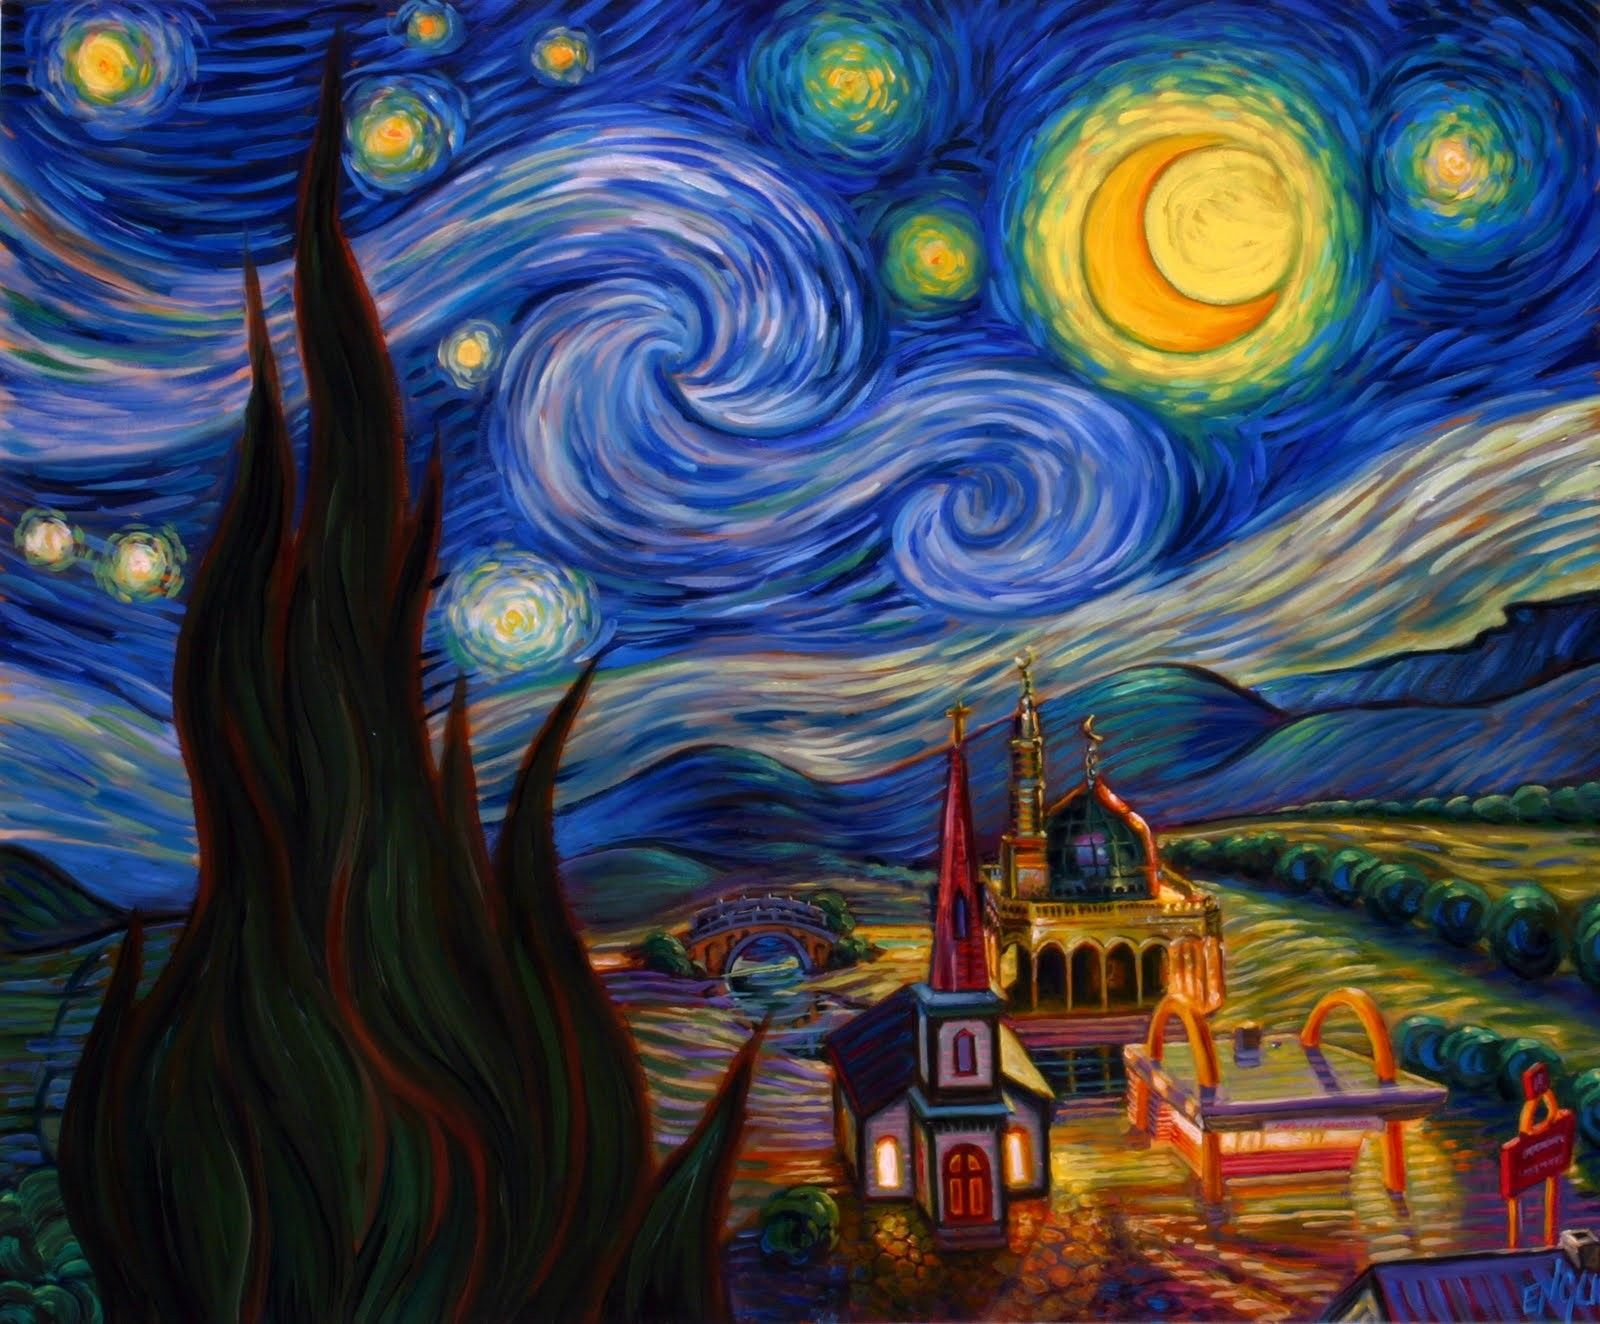 The Starry Night Vincent Van Gogh Meaning Wallpaper ...